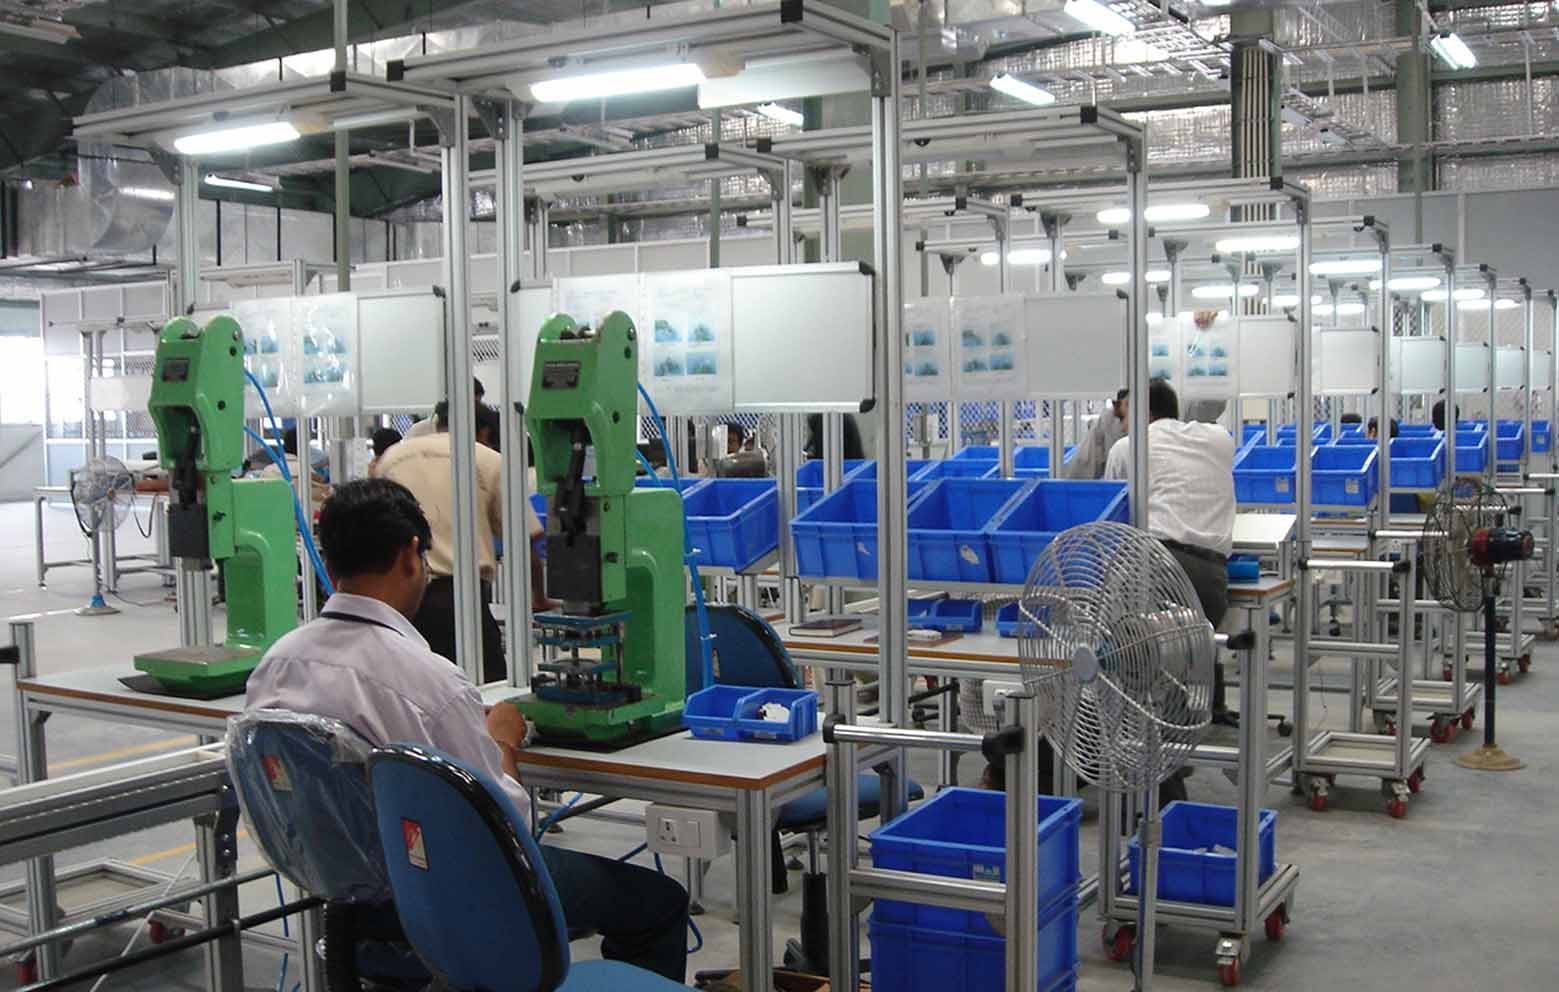 Alstrut offers turnkey robotics & industrial automation solutions to